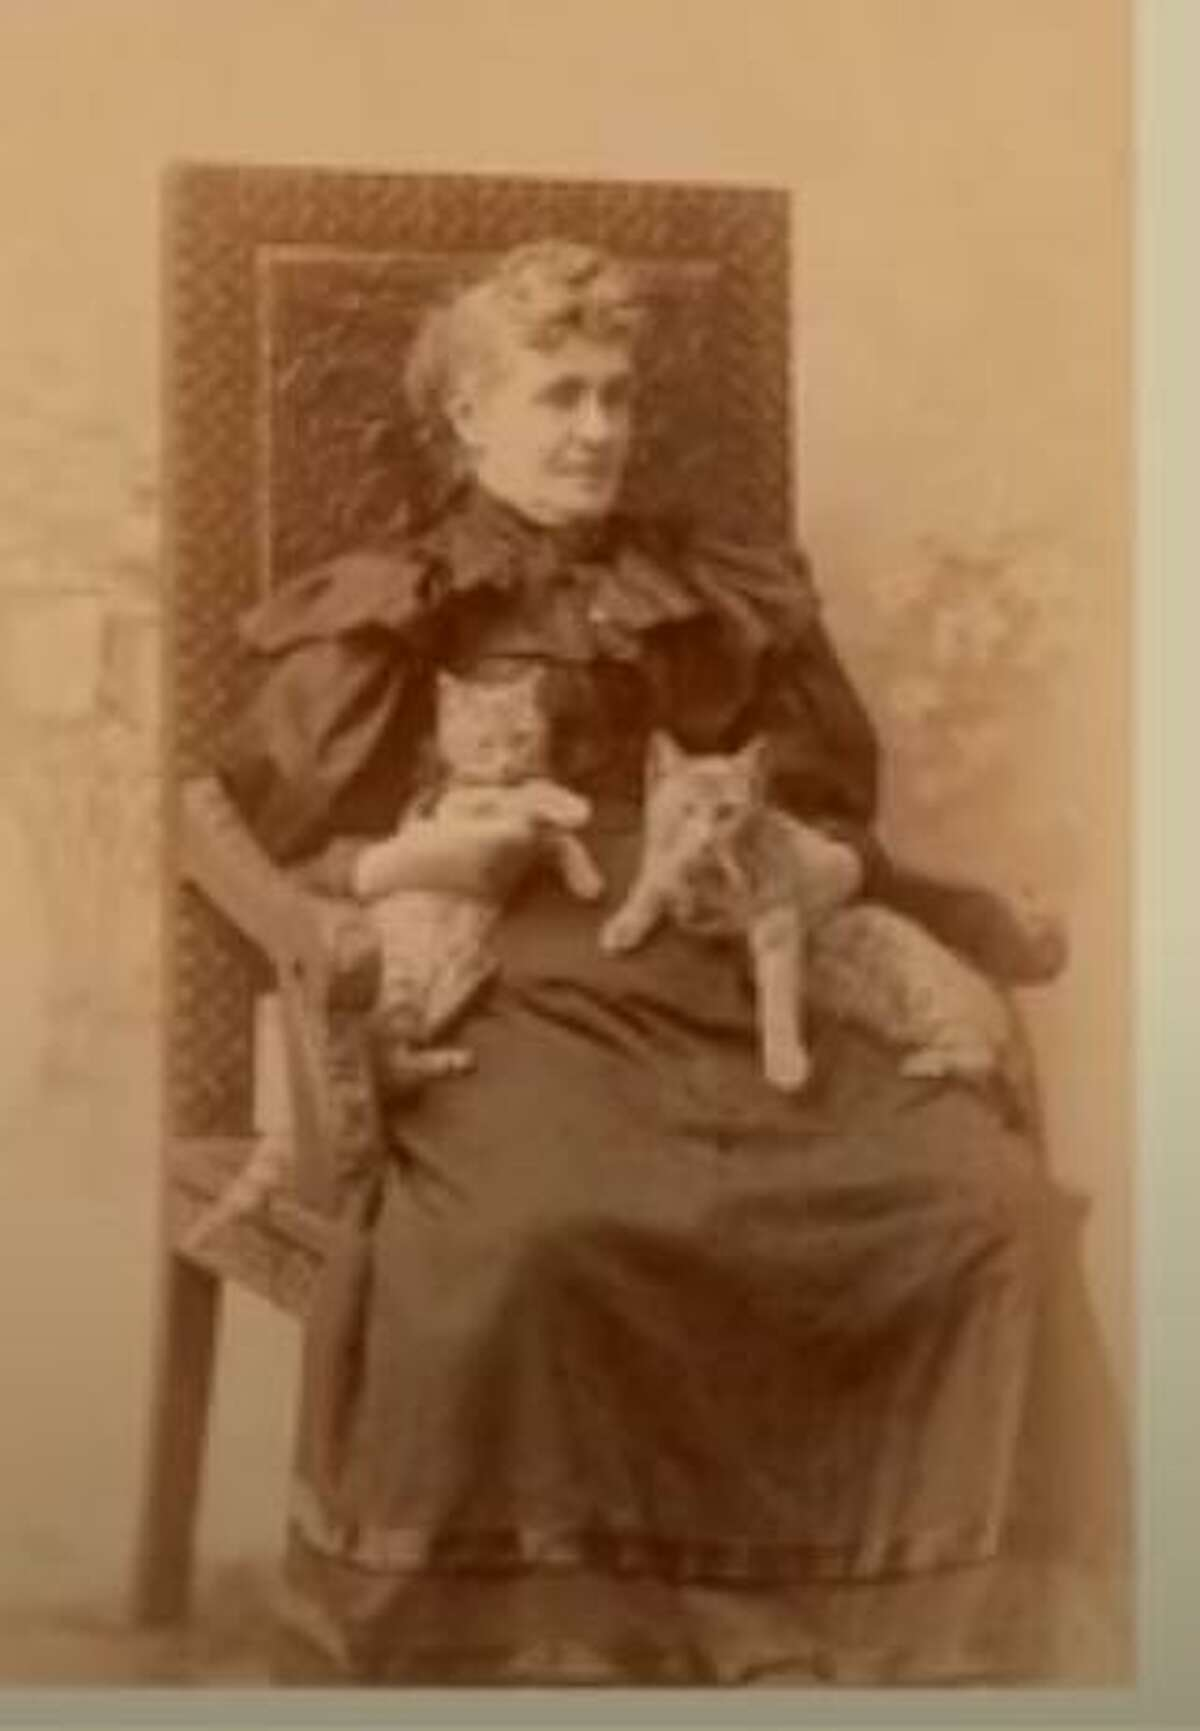 Interested to hear some homespun ghost stories set in Fort Bend County? Visit the local history Facebook group organized by Fort Bend County Libraries to hear about the Thompsons Bottoms Cat Woman and the recounting of a ghostly late-night visitor to a Richmond barber shop on a deathly-cold night many years ago.